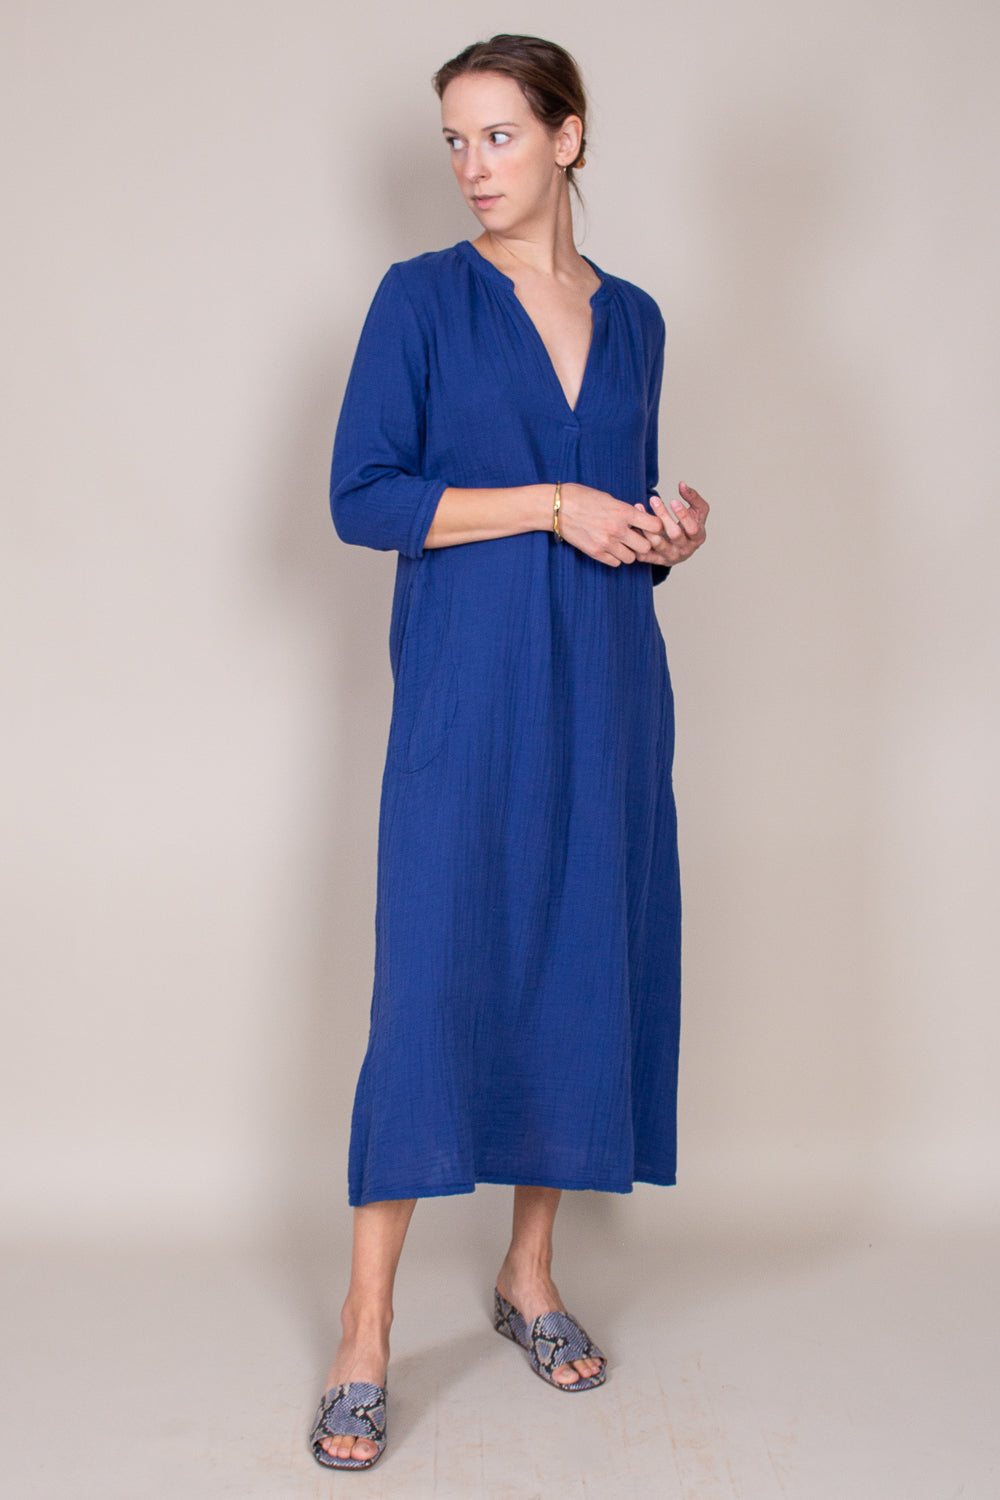 Joni Dress in Capri Blue